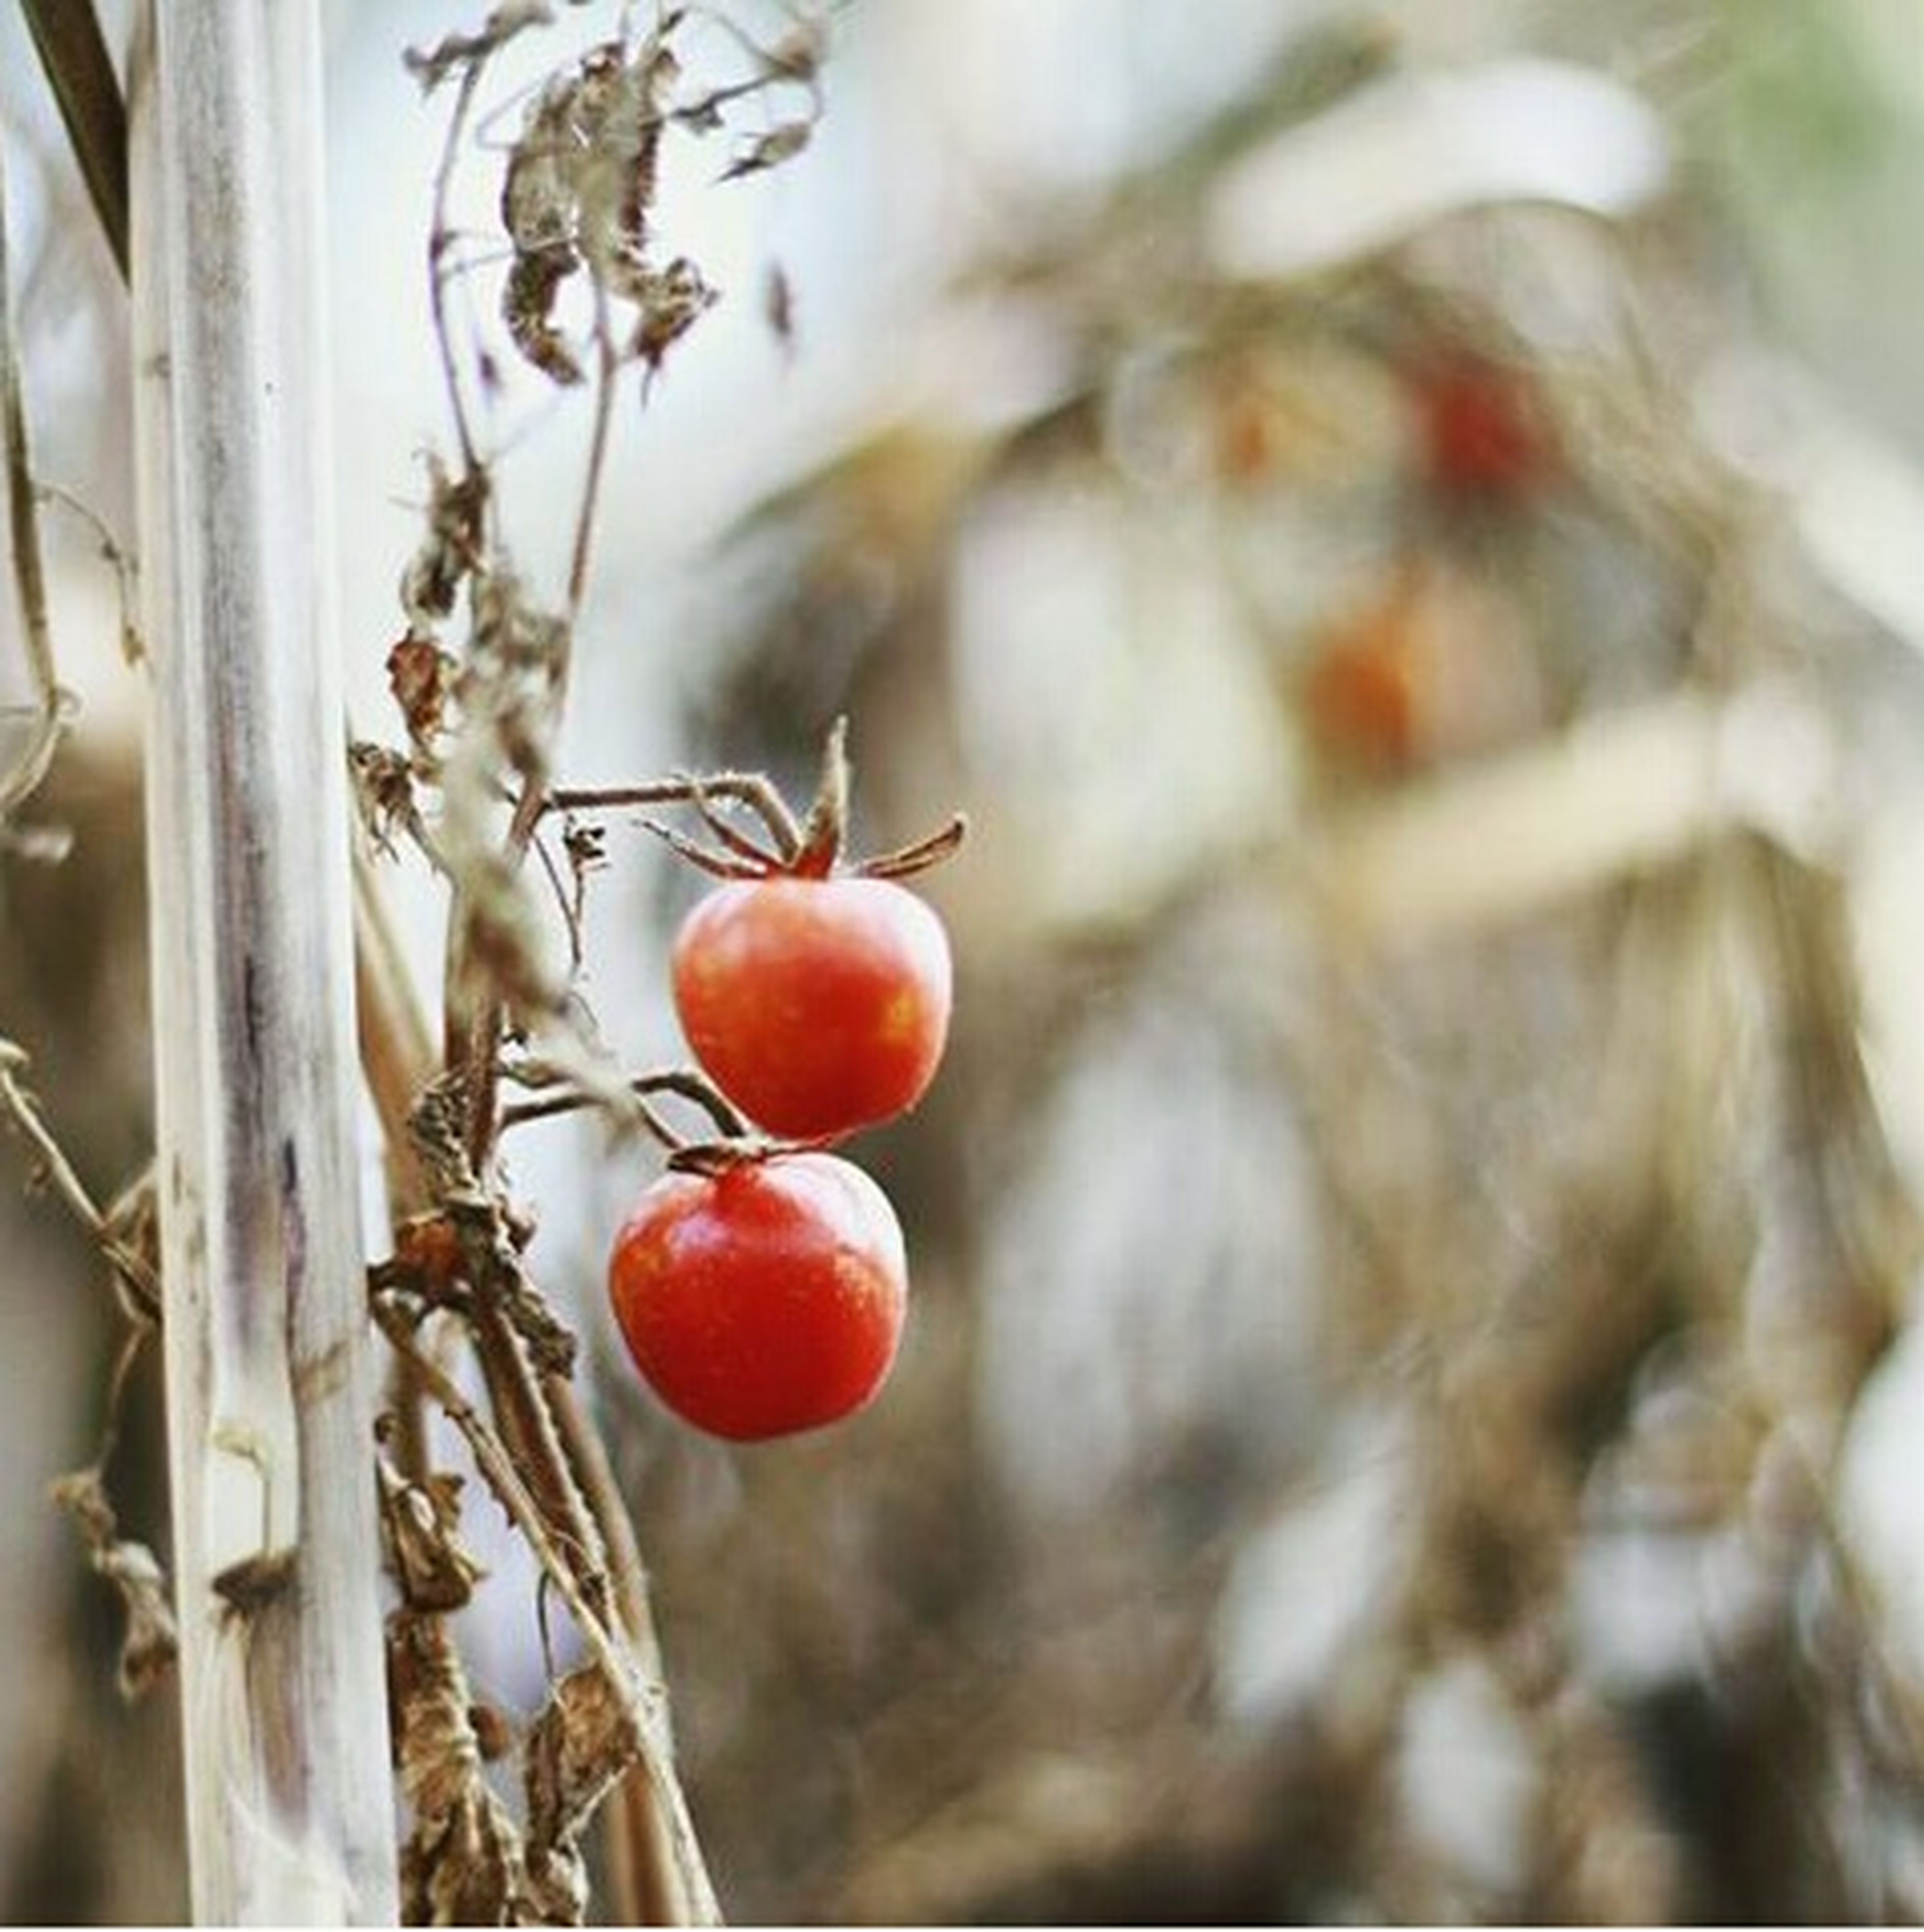 food and drink, fruit, food, focus on foreground, healthy eating, close-up, hanging, freshness, red, branch, selective focus, stem, twig, ripe, no people, day, cherry, tree, plant, indoors